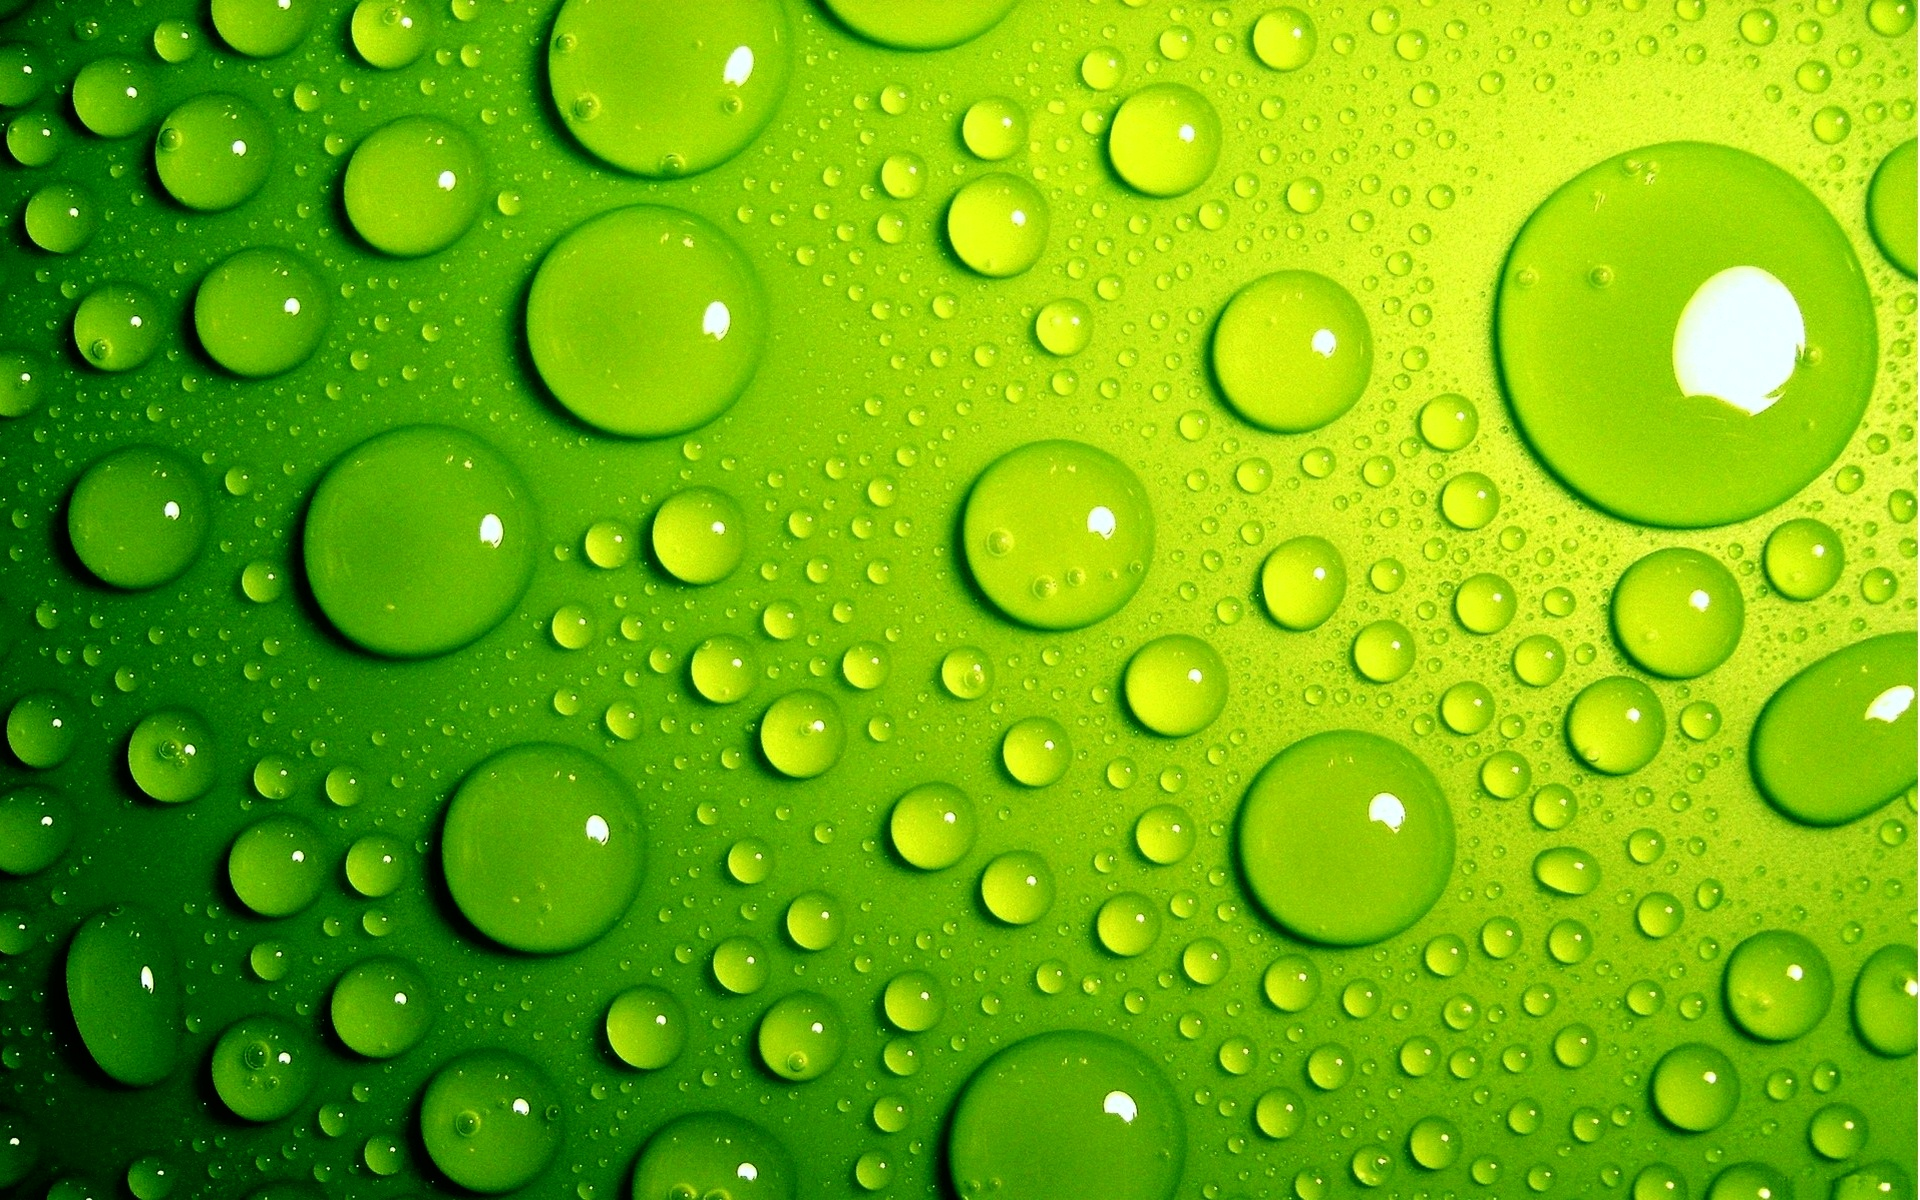 Green Wallpaper Free Download